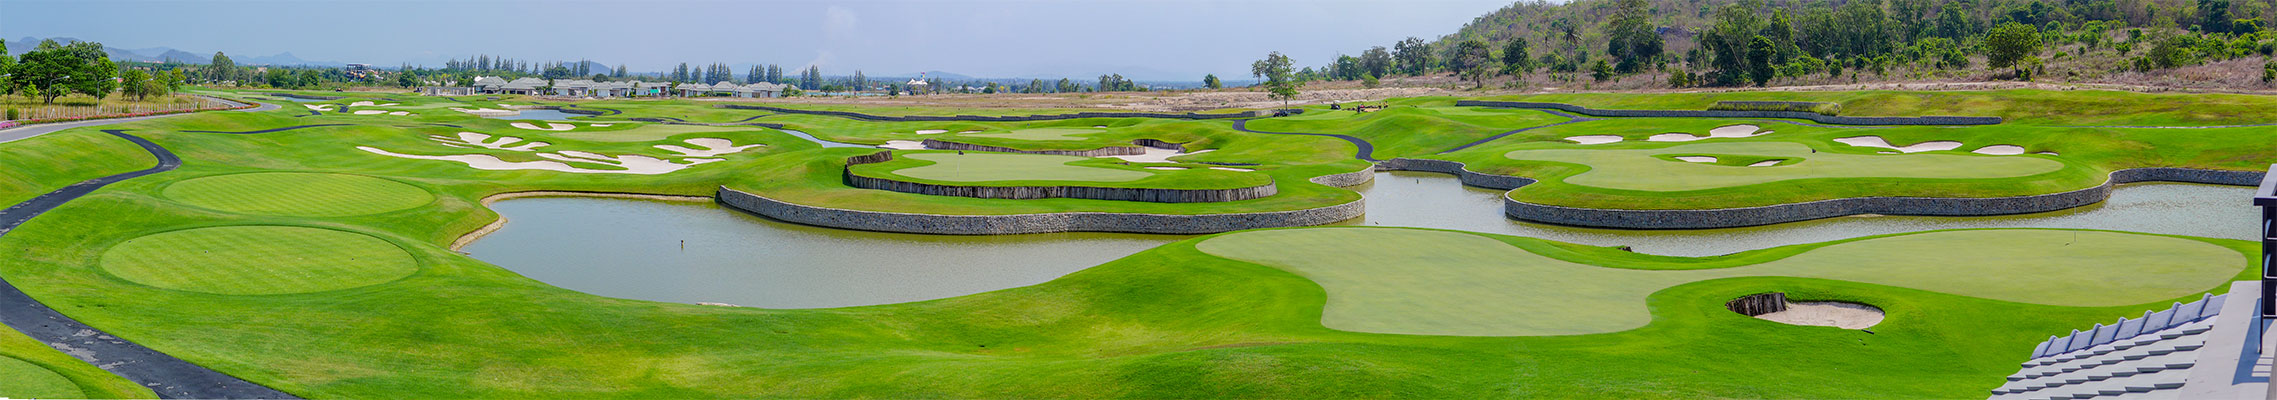 PAR 3 Black Mountain Golf Hua Hin